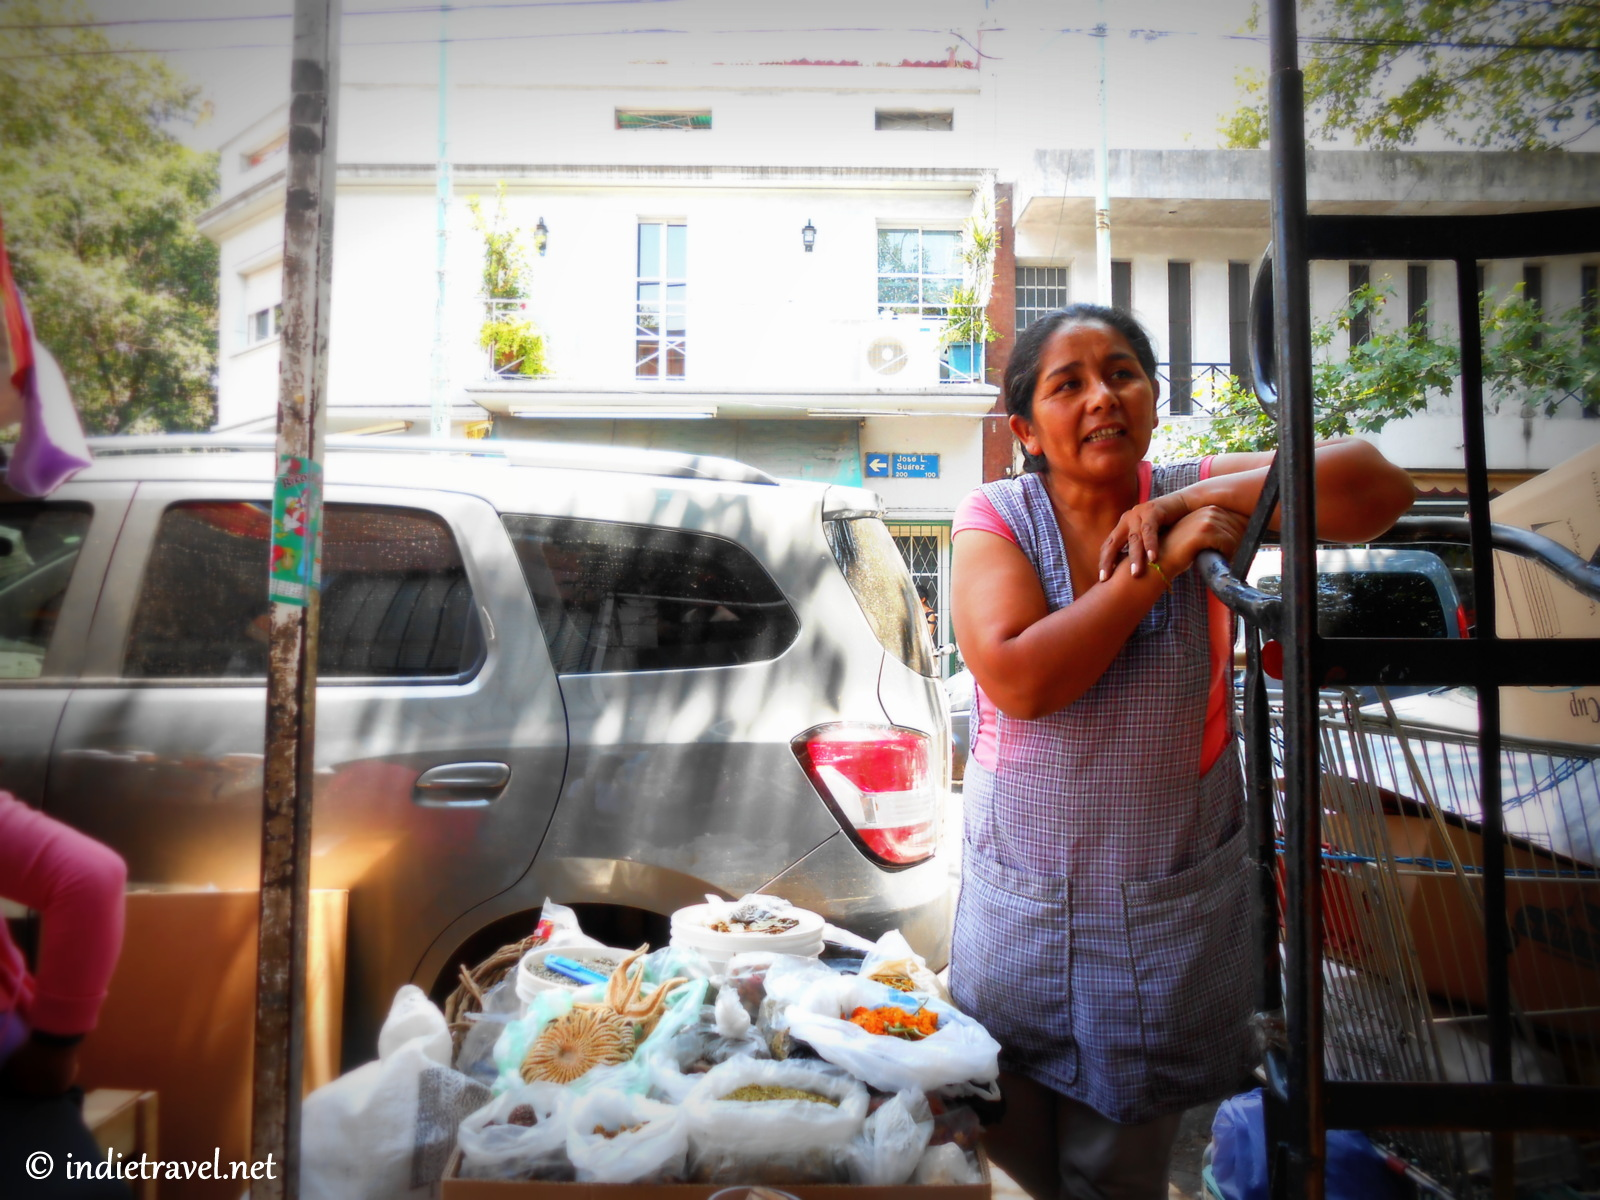 Chola in the Bolivian Market of Liniers